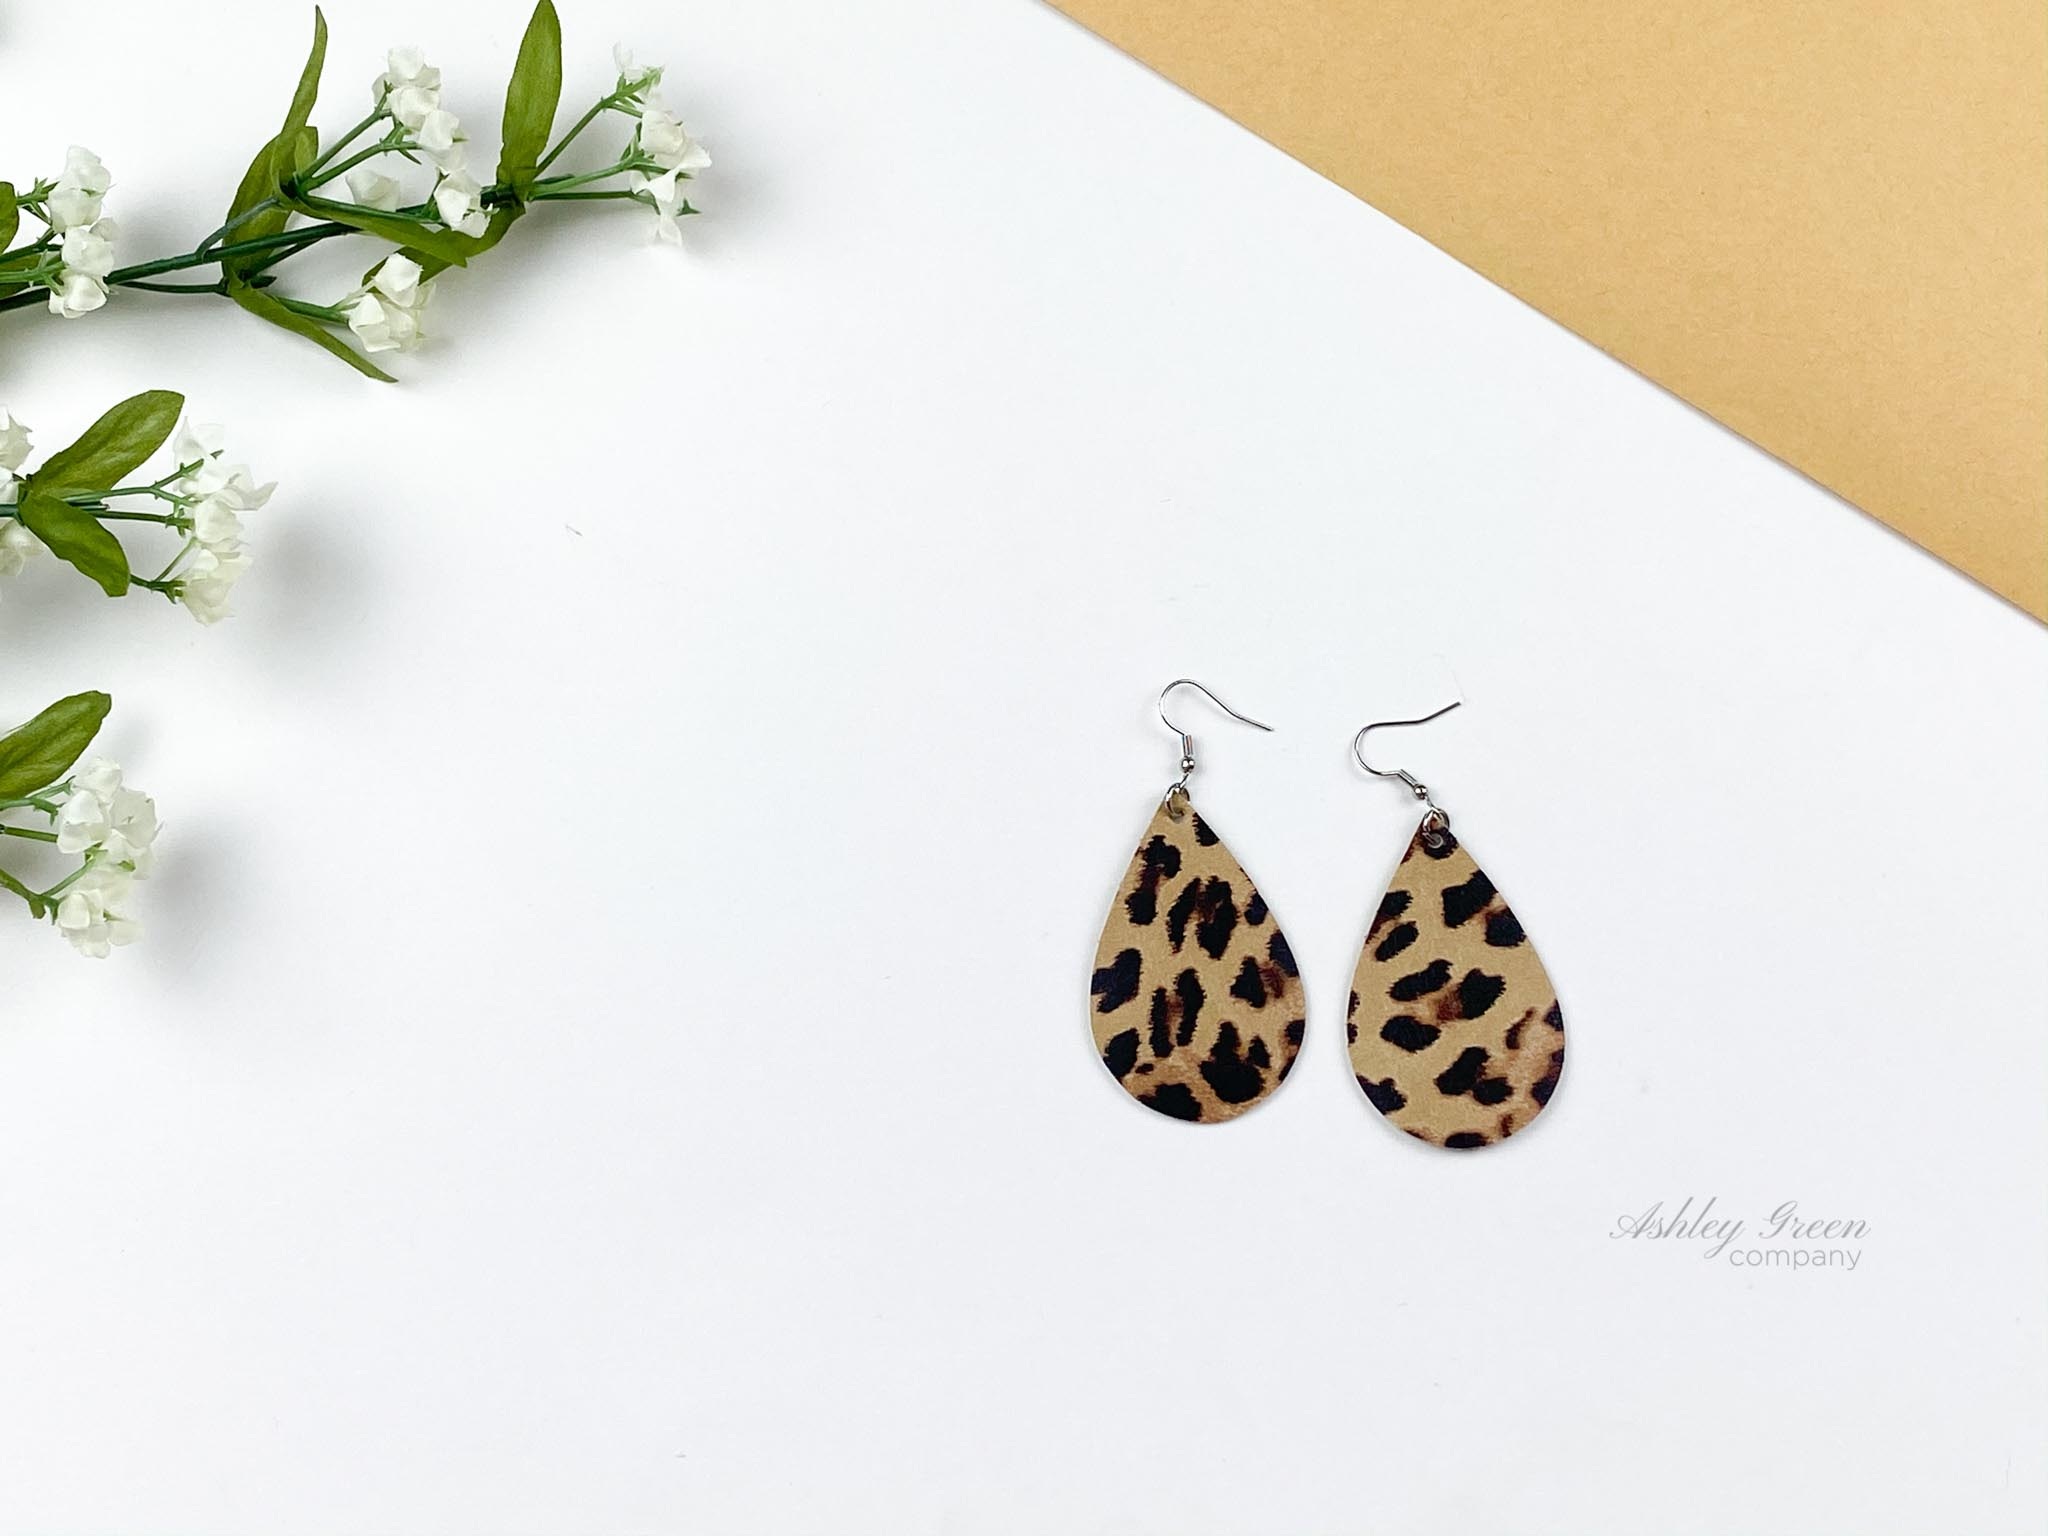 Earring Photos [WATERMARKED]-2